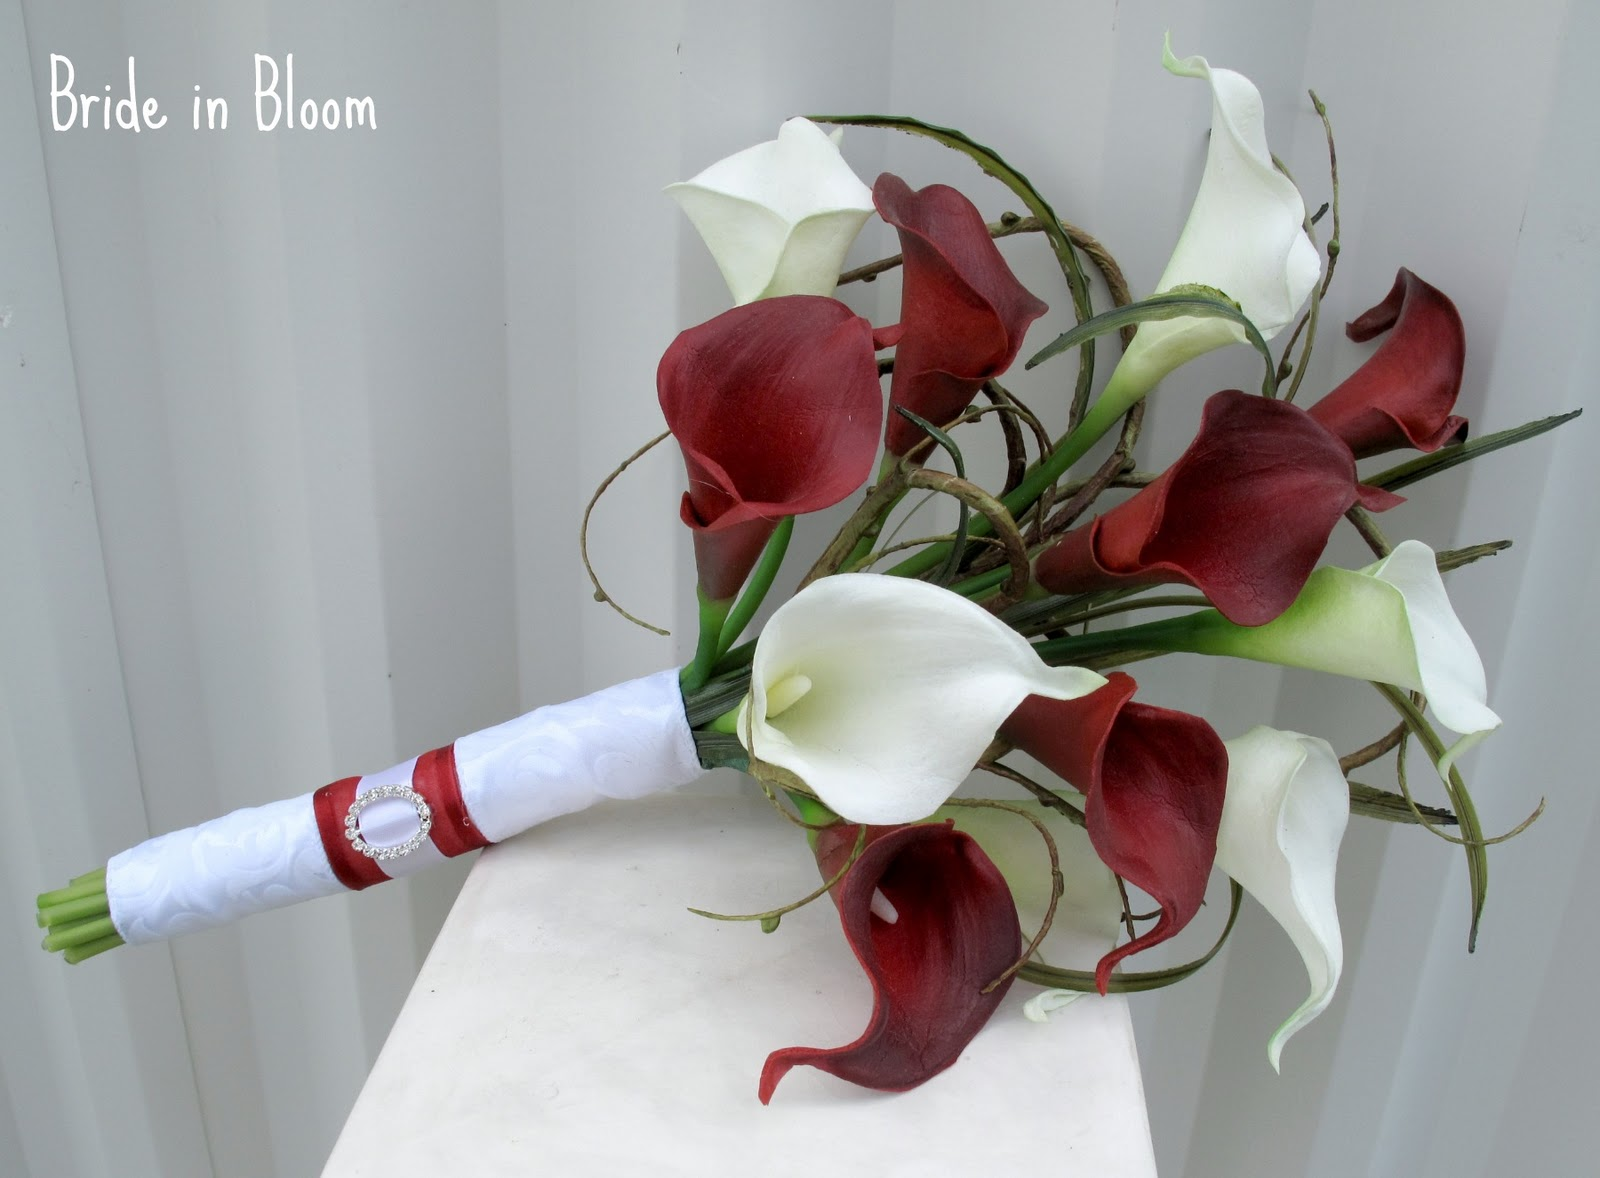 Bride in bloom red white calla lily bridal bouquet set red white calla lily bridal bouquet set izmirmasajfo